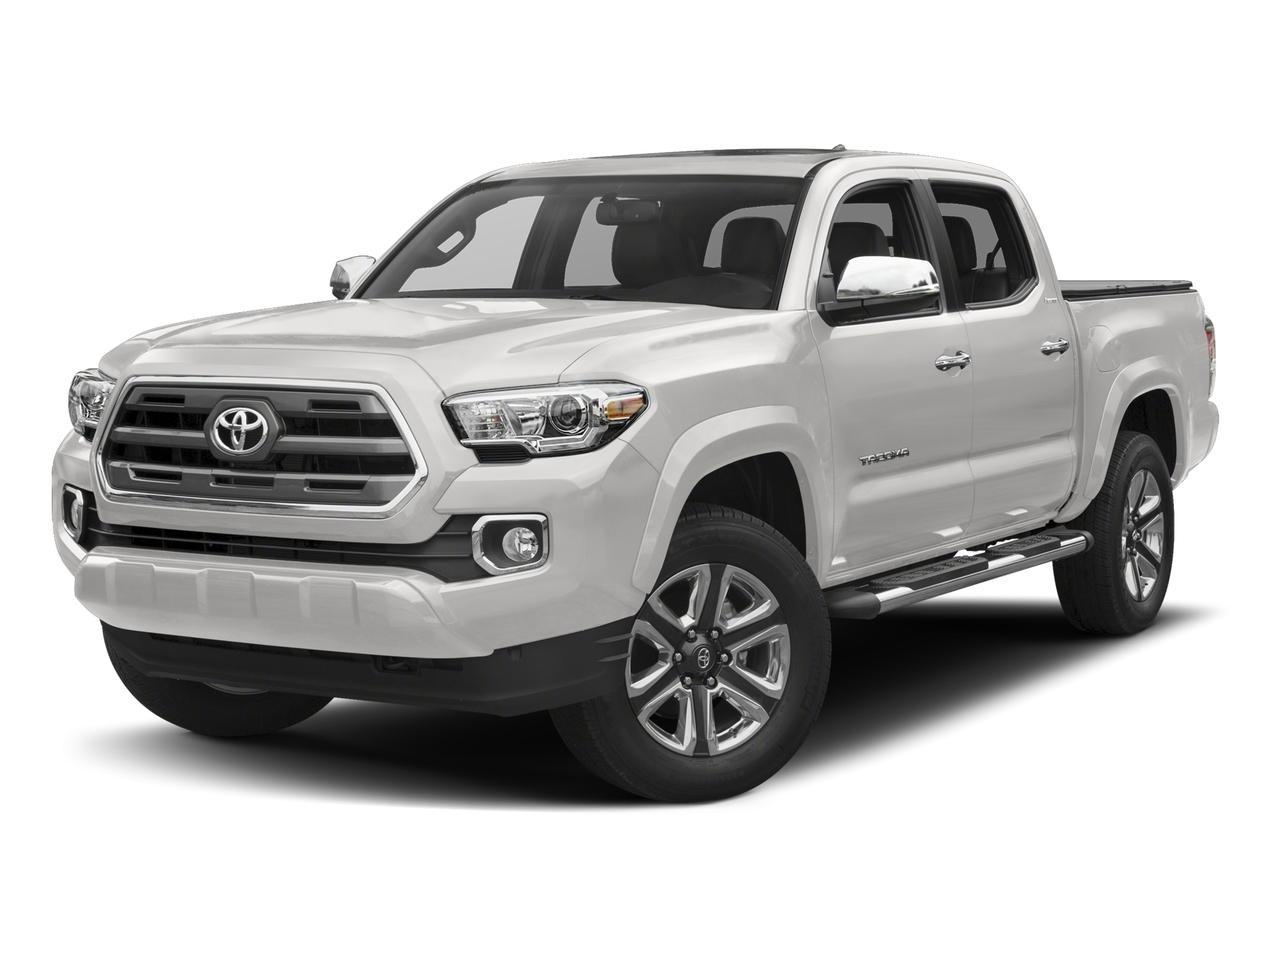 2017 Toyota Tacoma Vehicle Photo in Smyrna, GA 30080